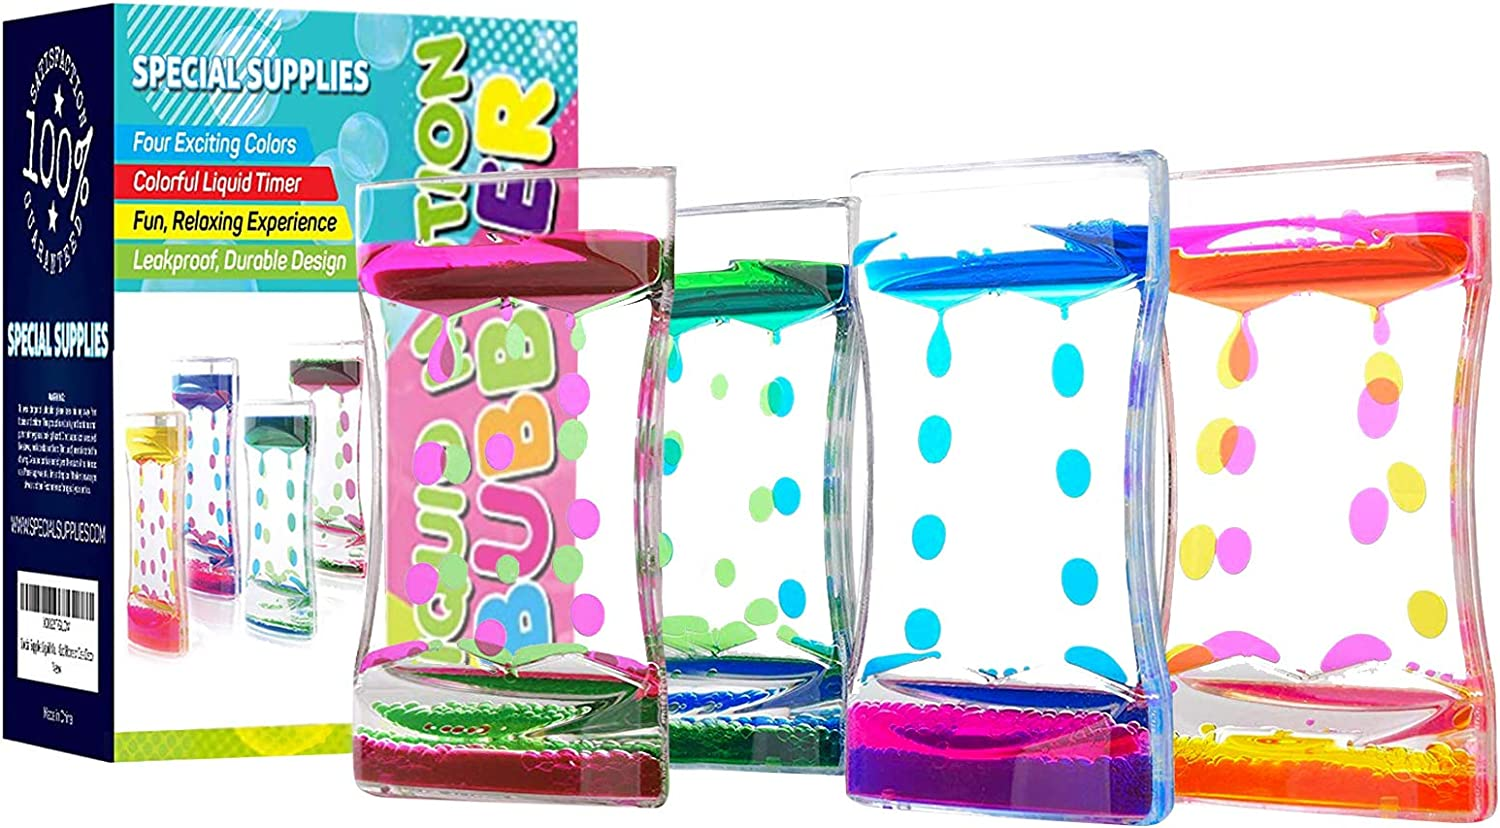 Special Supplies Liquid Motion Bubbler Deluxe Toy (4-Pack) Colorful Hourglass Timer with Droplet Movement, Bedroom, Kitchen, Bathroom Sensory Play, Cool Home or Desk Decor